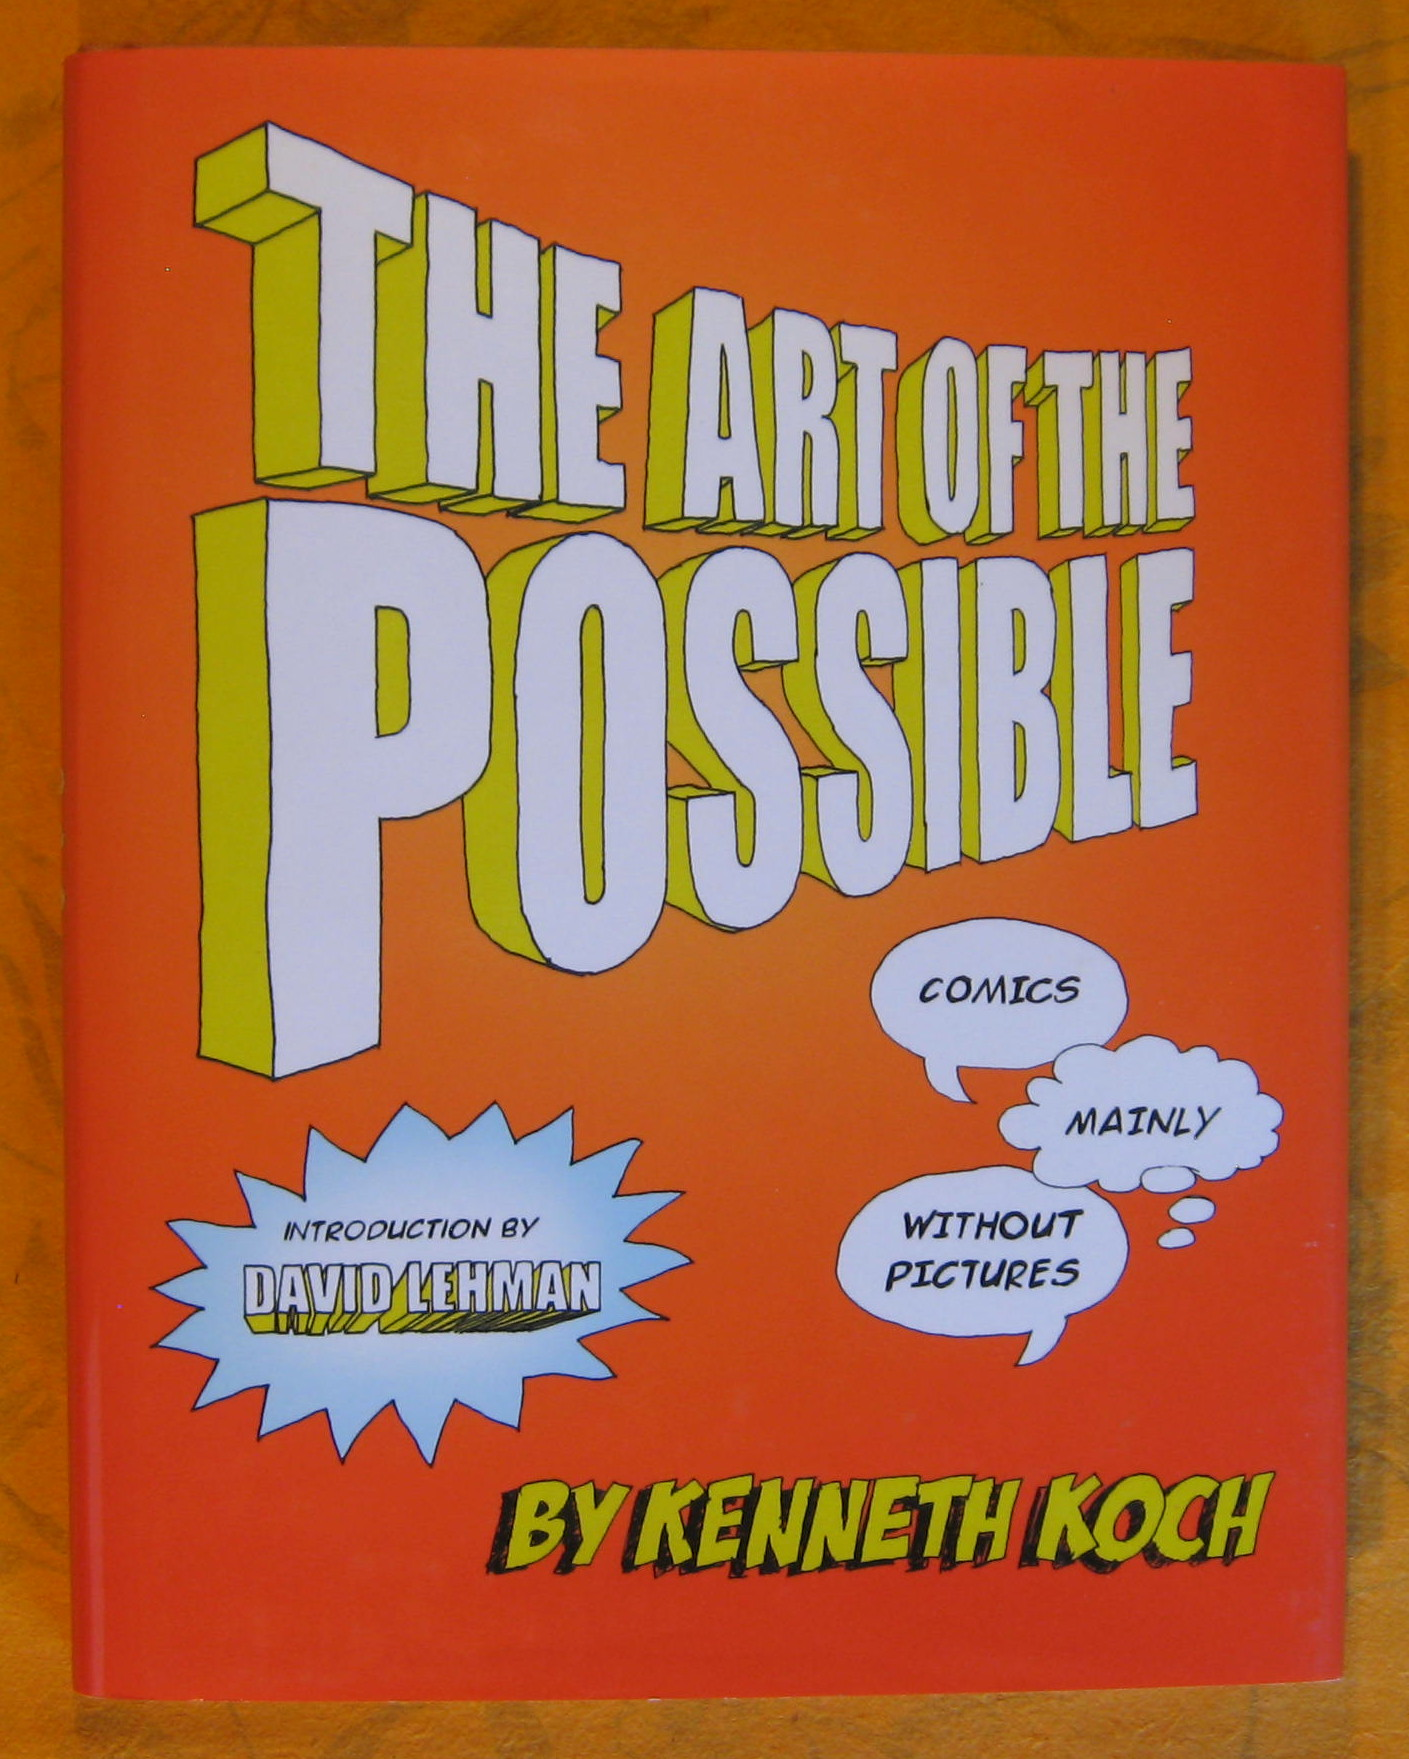 Image for The Art of The Possible : Comics, Mainly Without Pictures